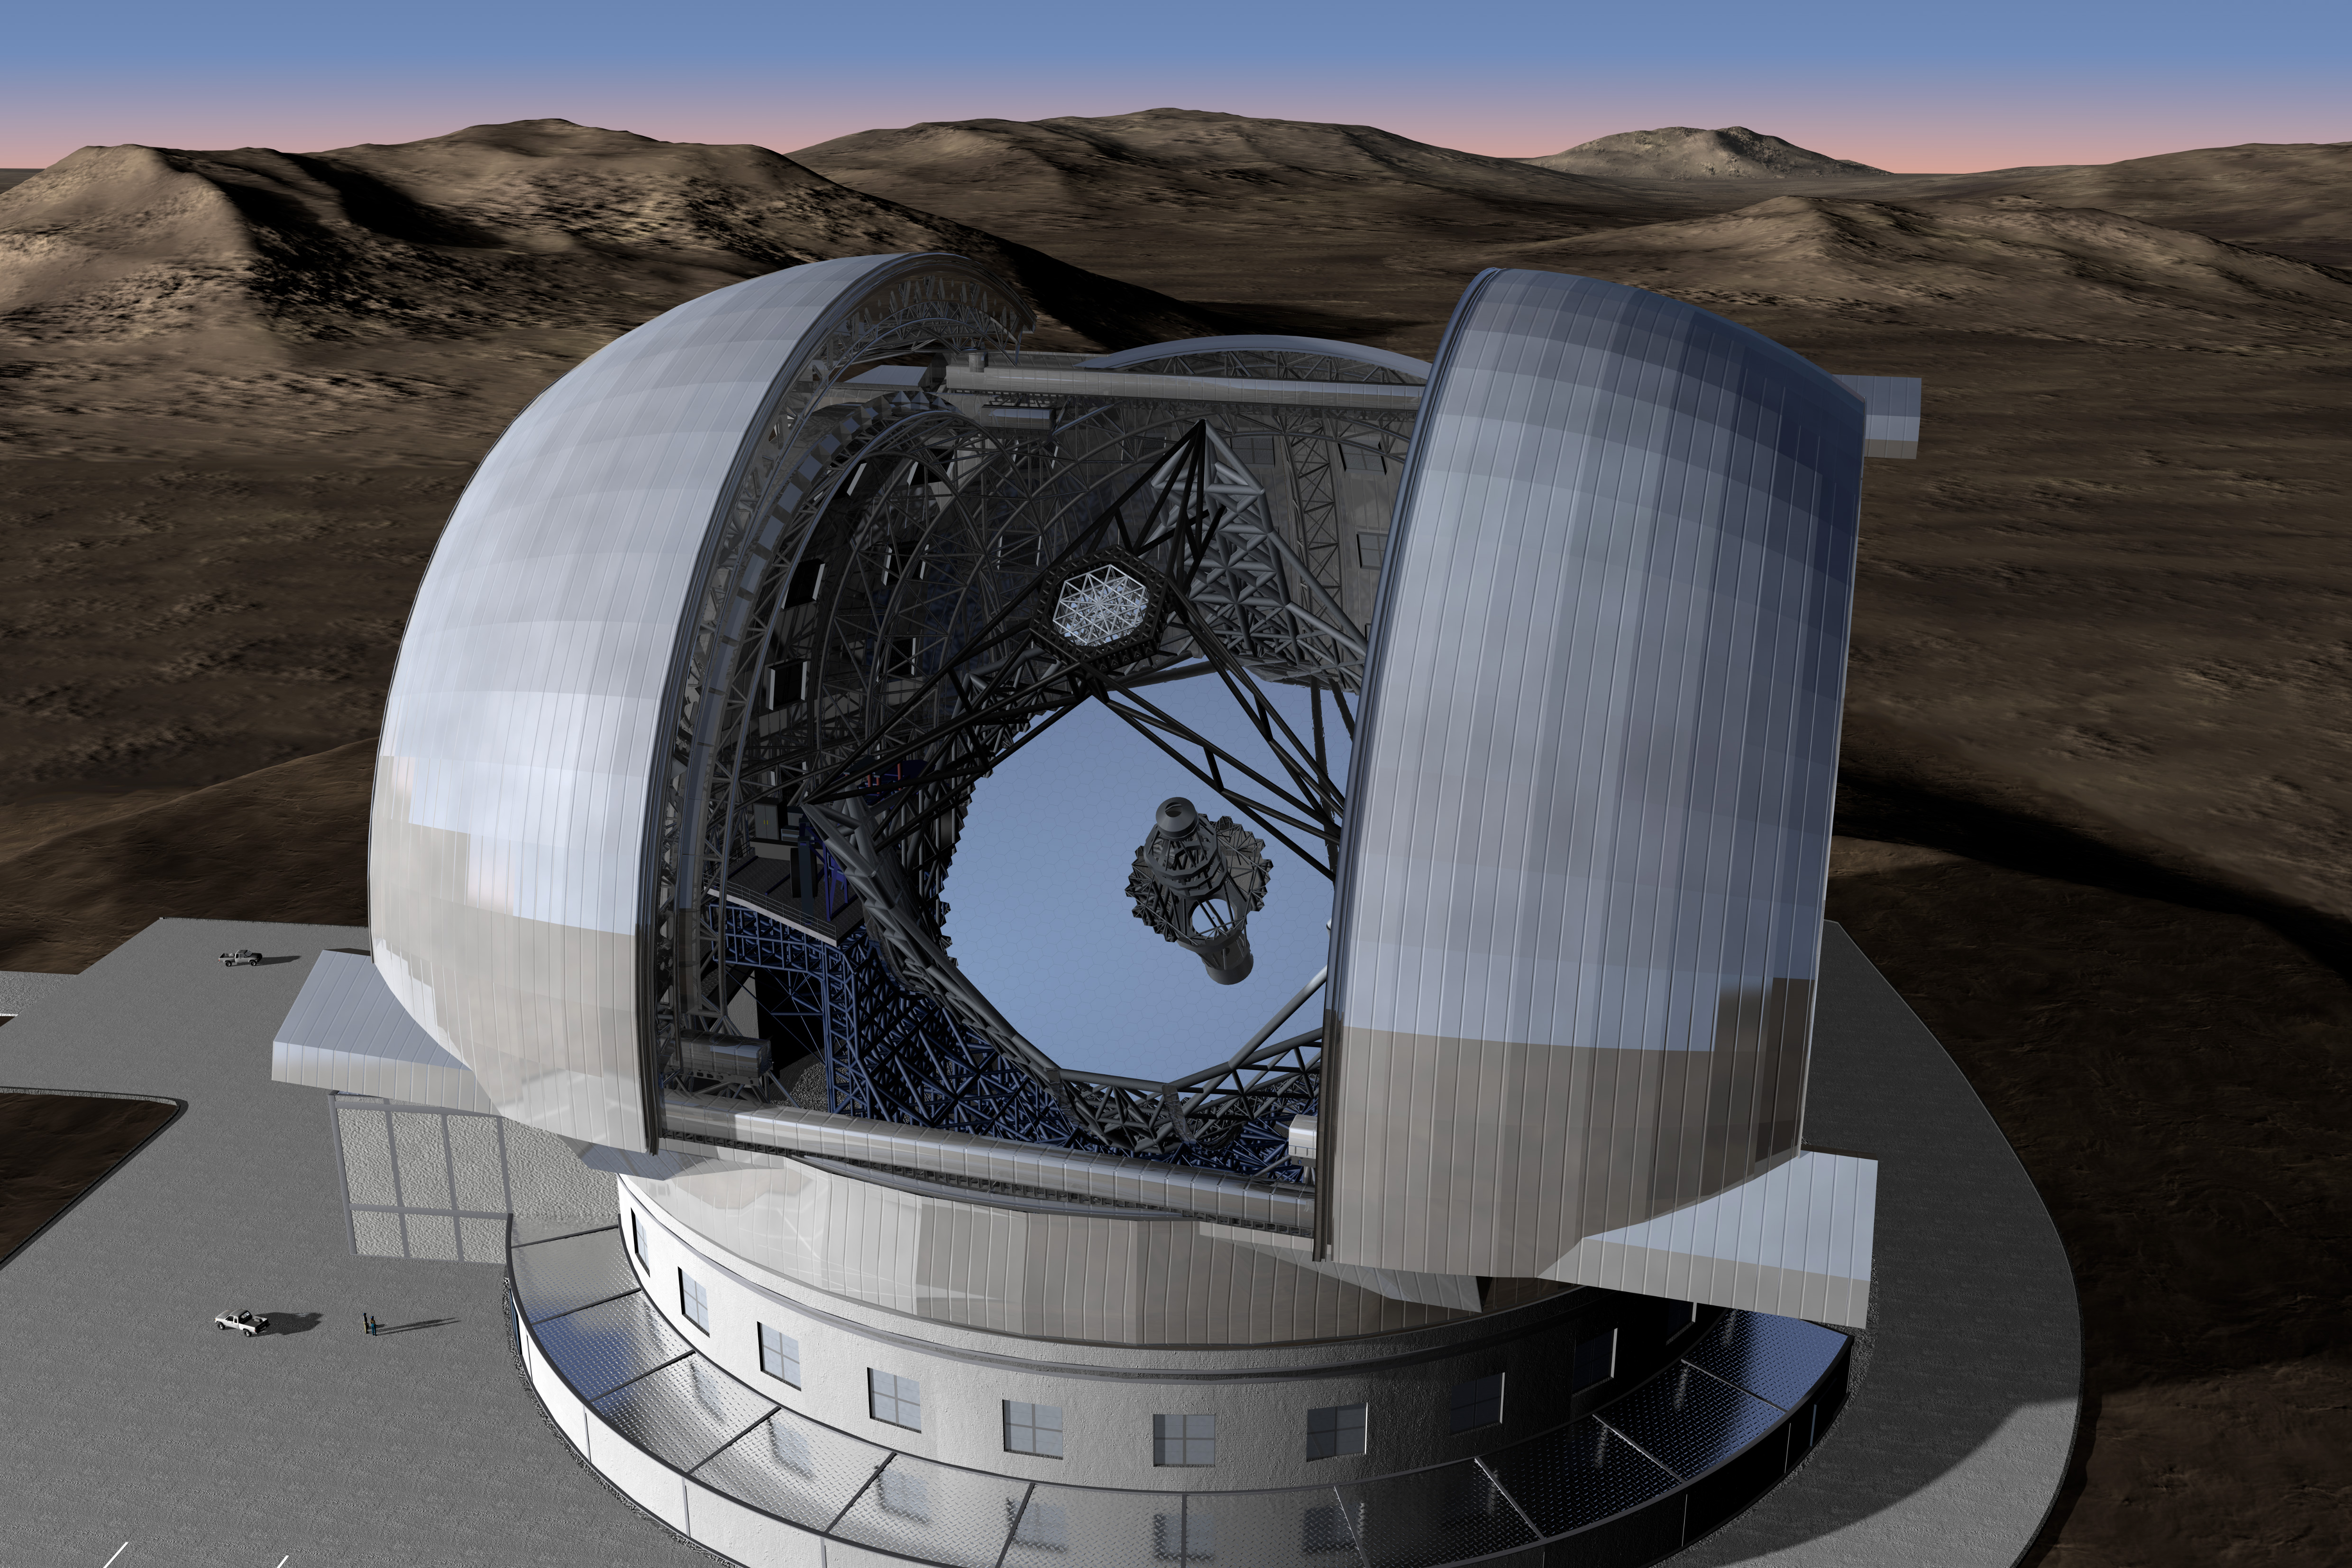 dab1a397412f6 Extremely Large Telescope  The Biggest Eye on the Sky